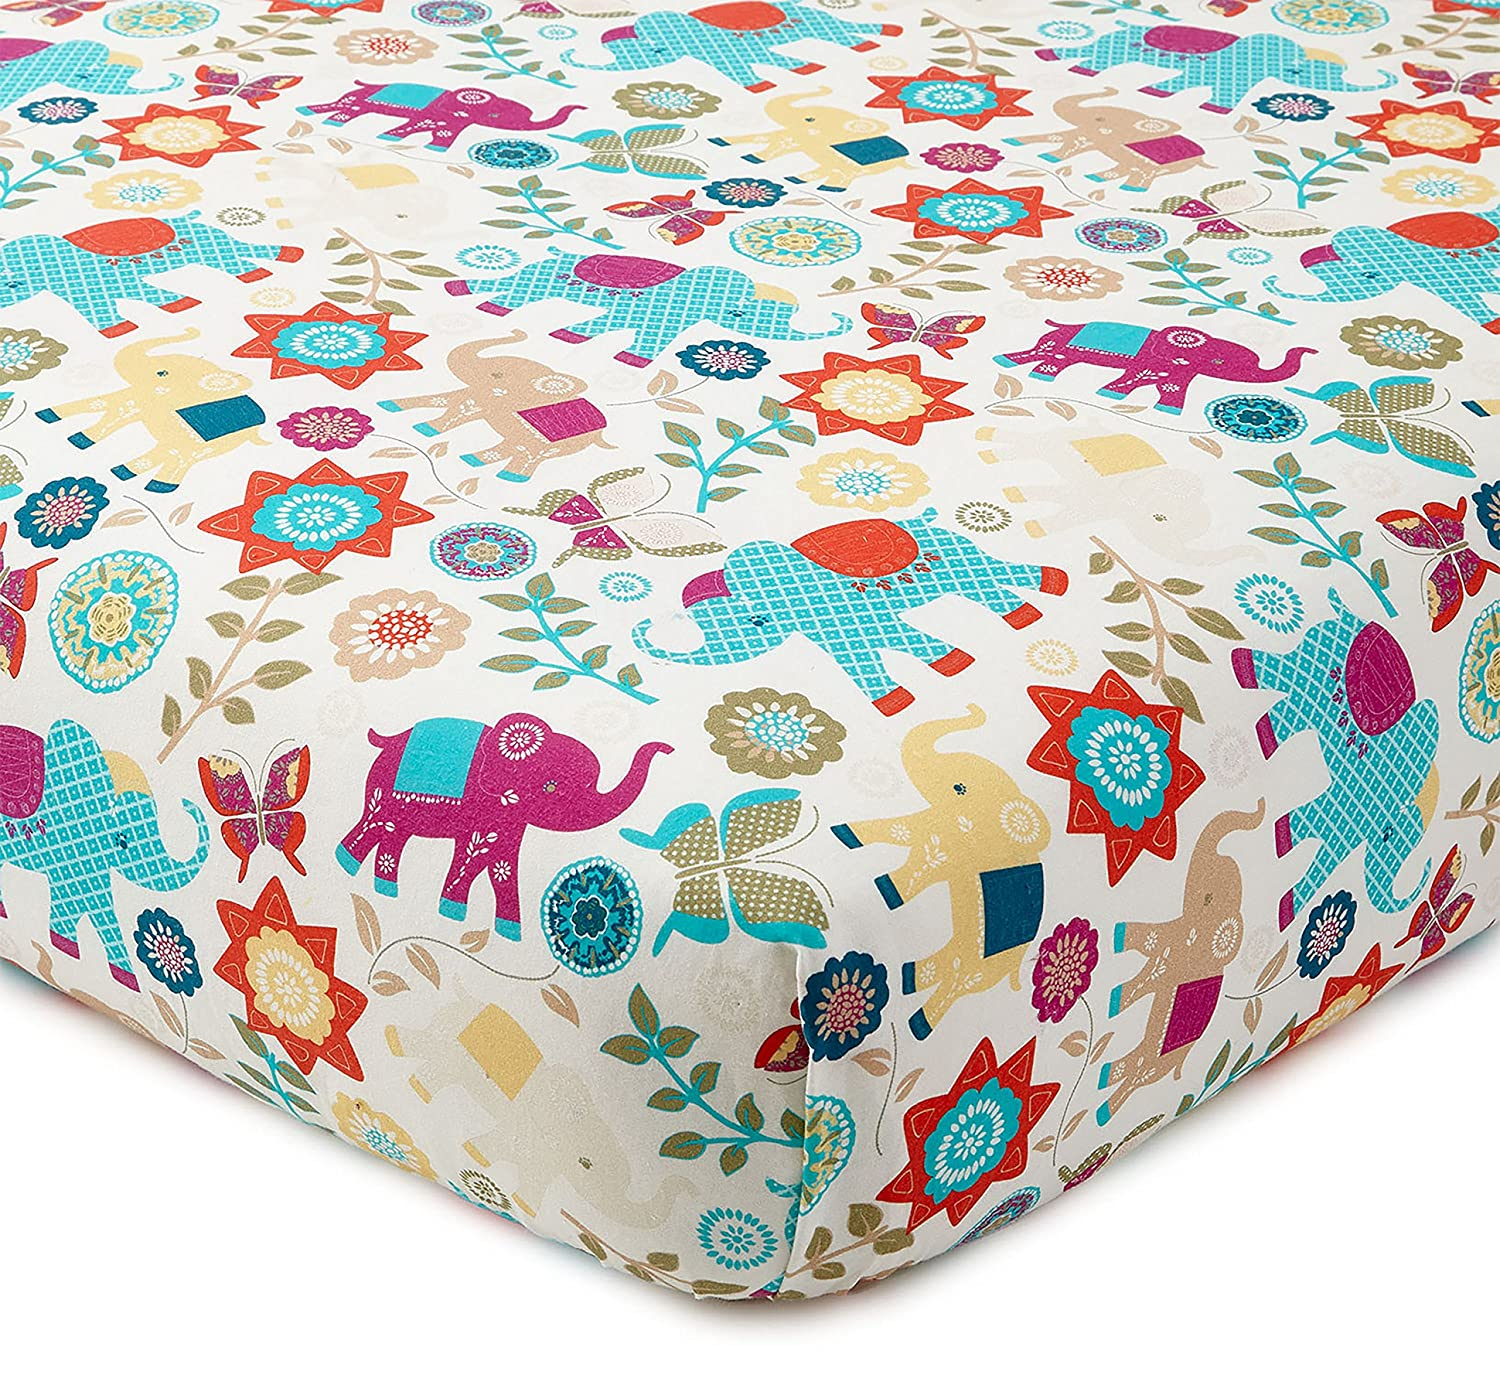 Red 100/% Cotton Teal Orange Nursery Accessories Boho Elephants Leaves and Flowers Yellow Fuchsia Fits Standard Crib and Toddler Mattress Zahara Crib Fitted Sheet Levtex Baby